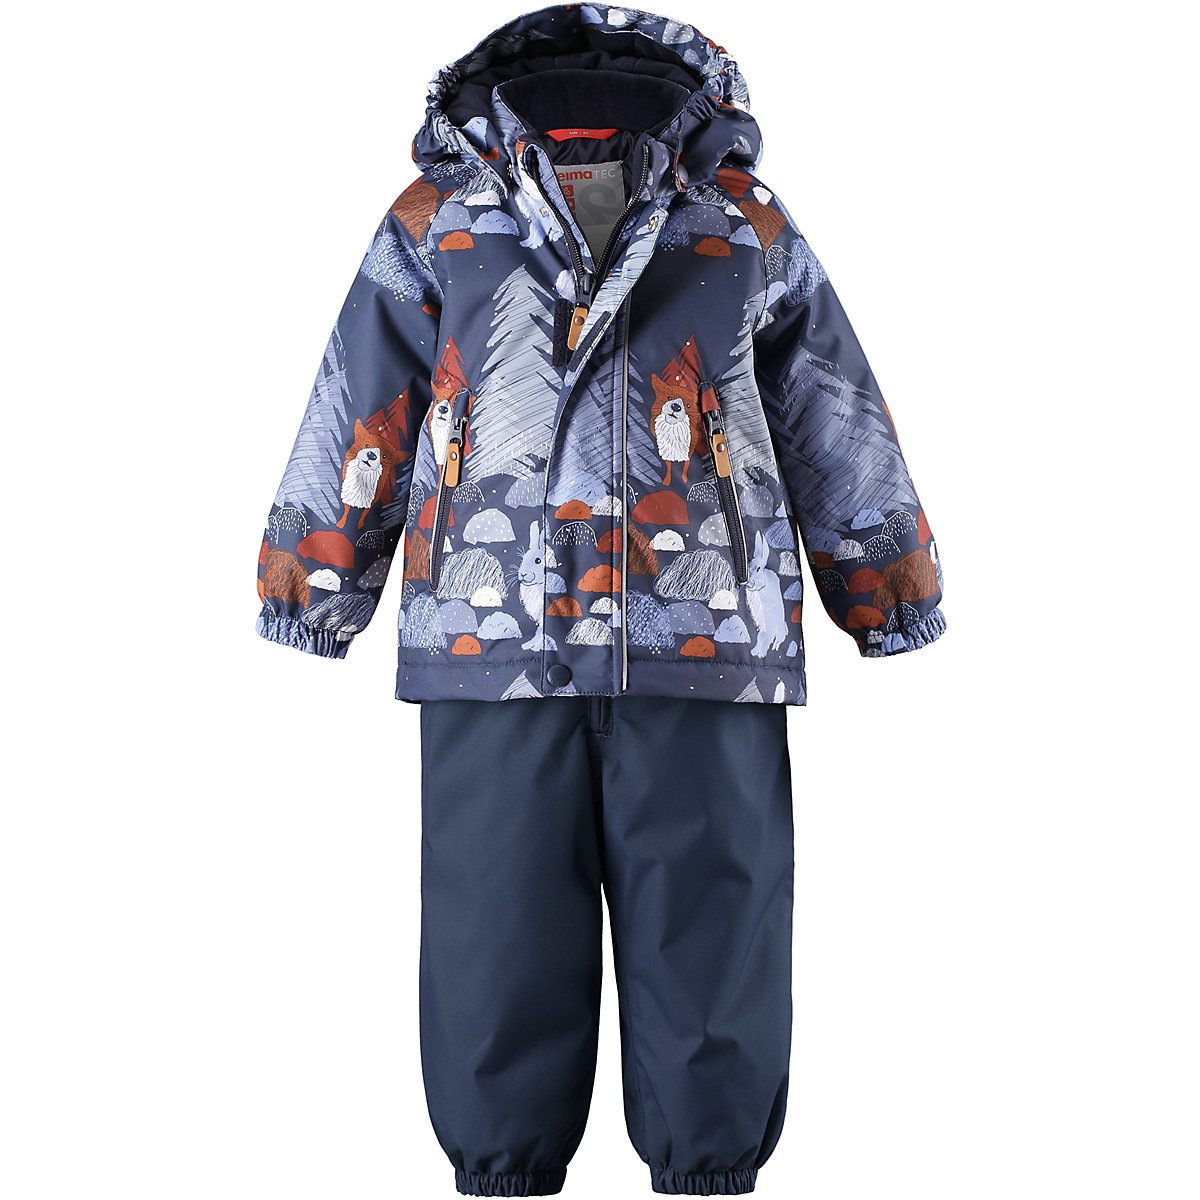 REIMA Babys Sets 8688723 for boys Polyester Baby Kit boy Jacket and pants 2018 baby boys 90